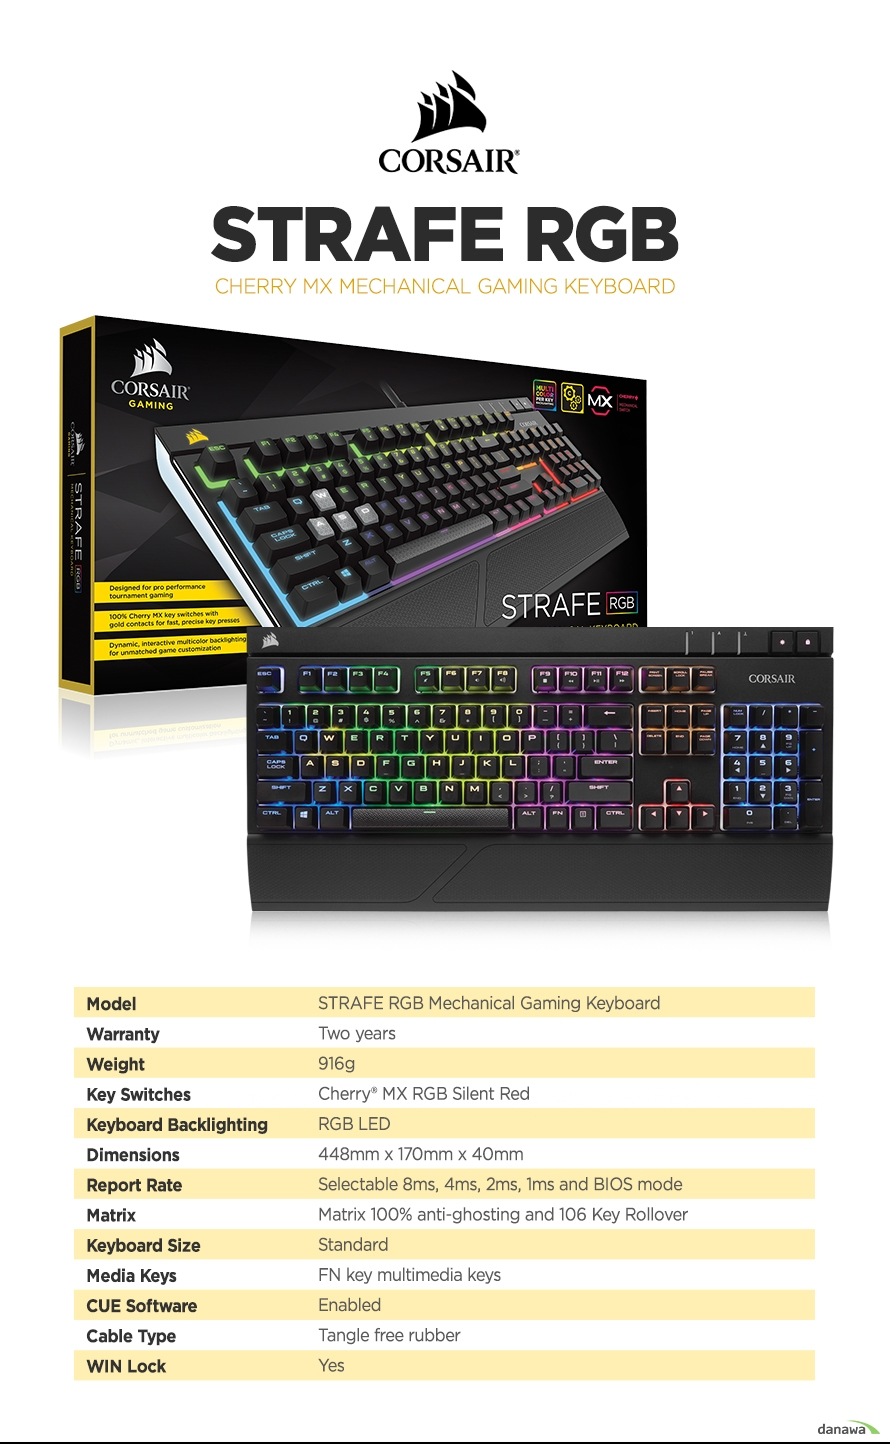 제품 사양Model	STRAFE RGB Mechanical Gaming KeyboardWarranty	Two yearsWeight	916gKey Switches	Cherry® MX RGB Silent RedKeyboard Backlighting	RGB LEDDimensions	448mm x 170mm x 40mmReport Rate	Selectable 8ms, 4ms, 2ms, 1ms and BIOS modeMatrix	Matrix 100% anti-ghosting and 106 Key RolloverKeyboard Size	StandardMedia Keys	FN key multimedia keysCUE Software	EnabledCable Type	Tangle free rubberWIN Lock	Yes